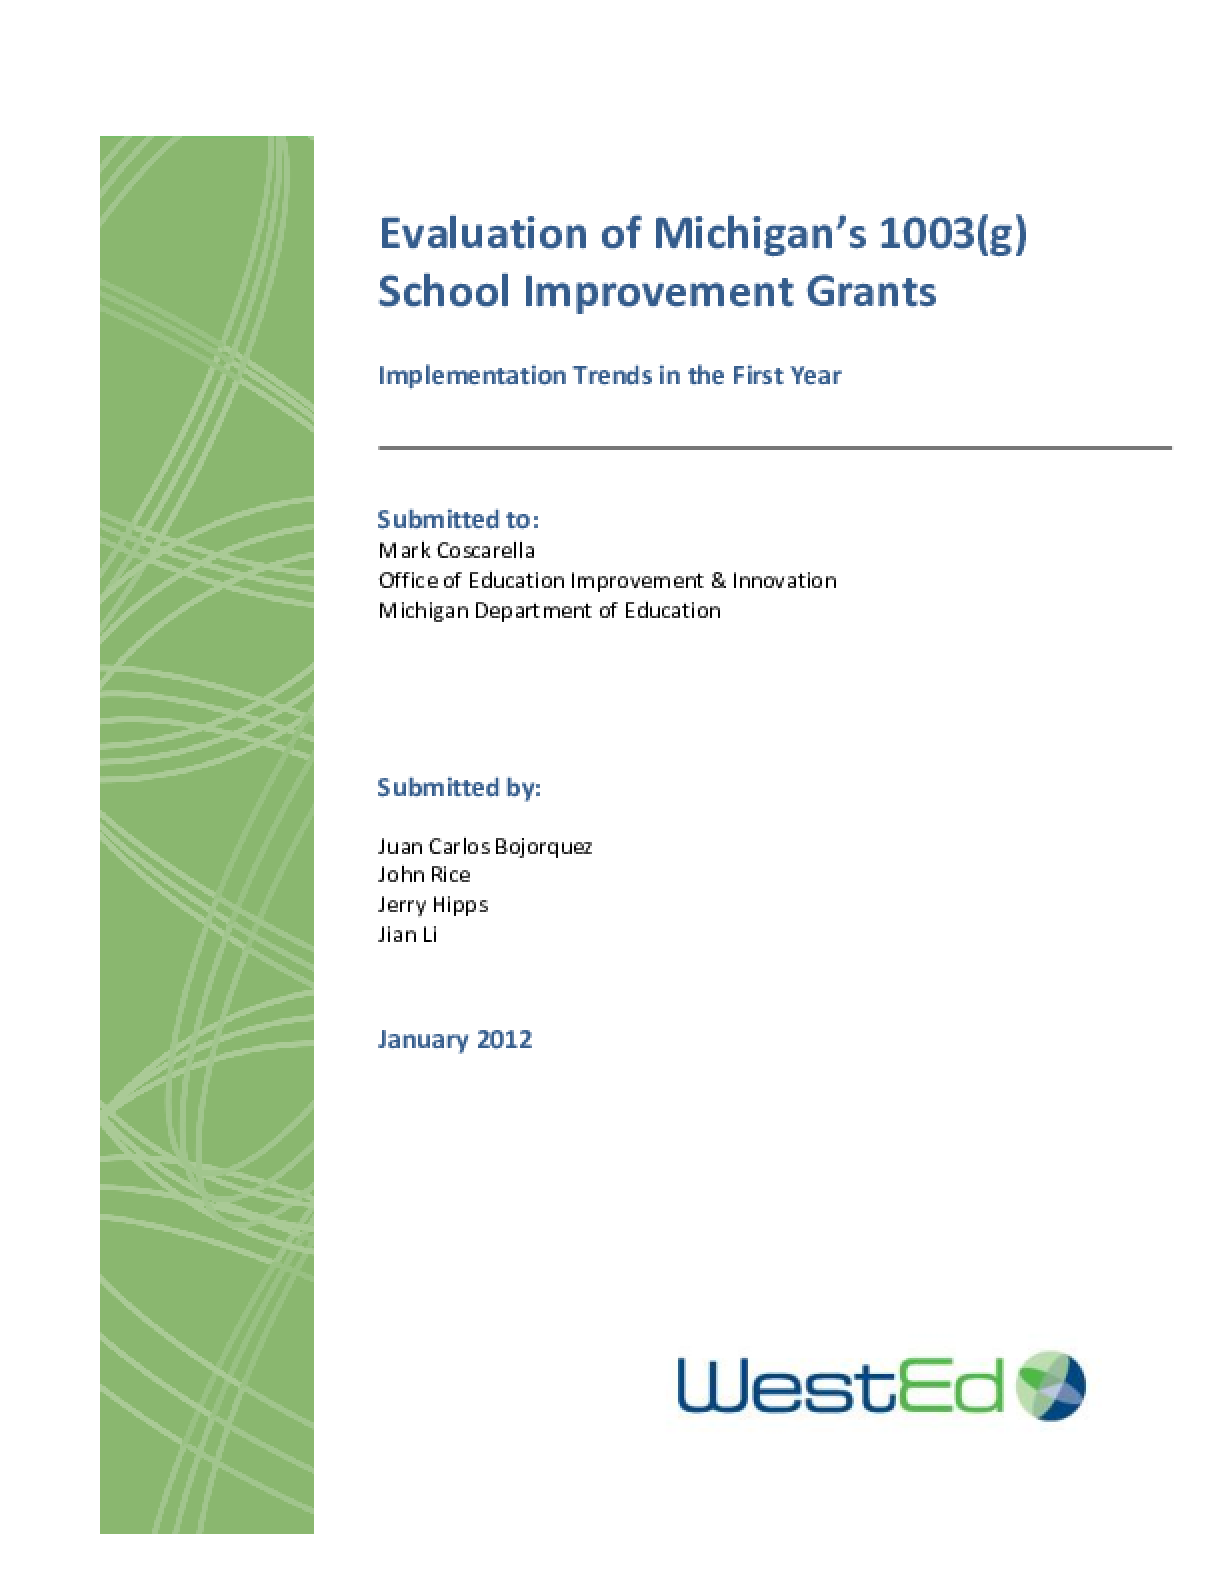 Evaluation of Michigan's 1003(g) School Improvement Grants : Implementation Trends in the First Year